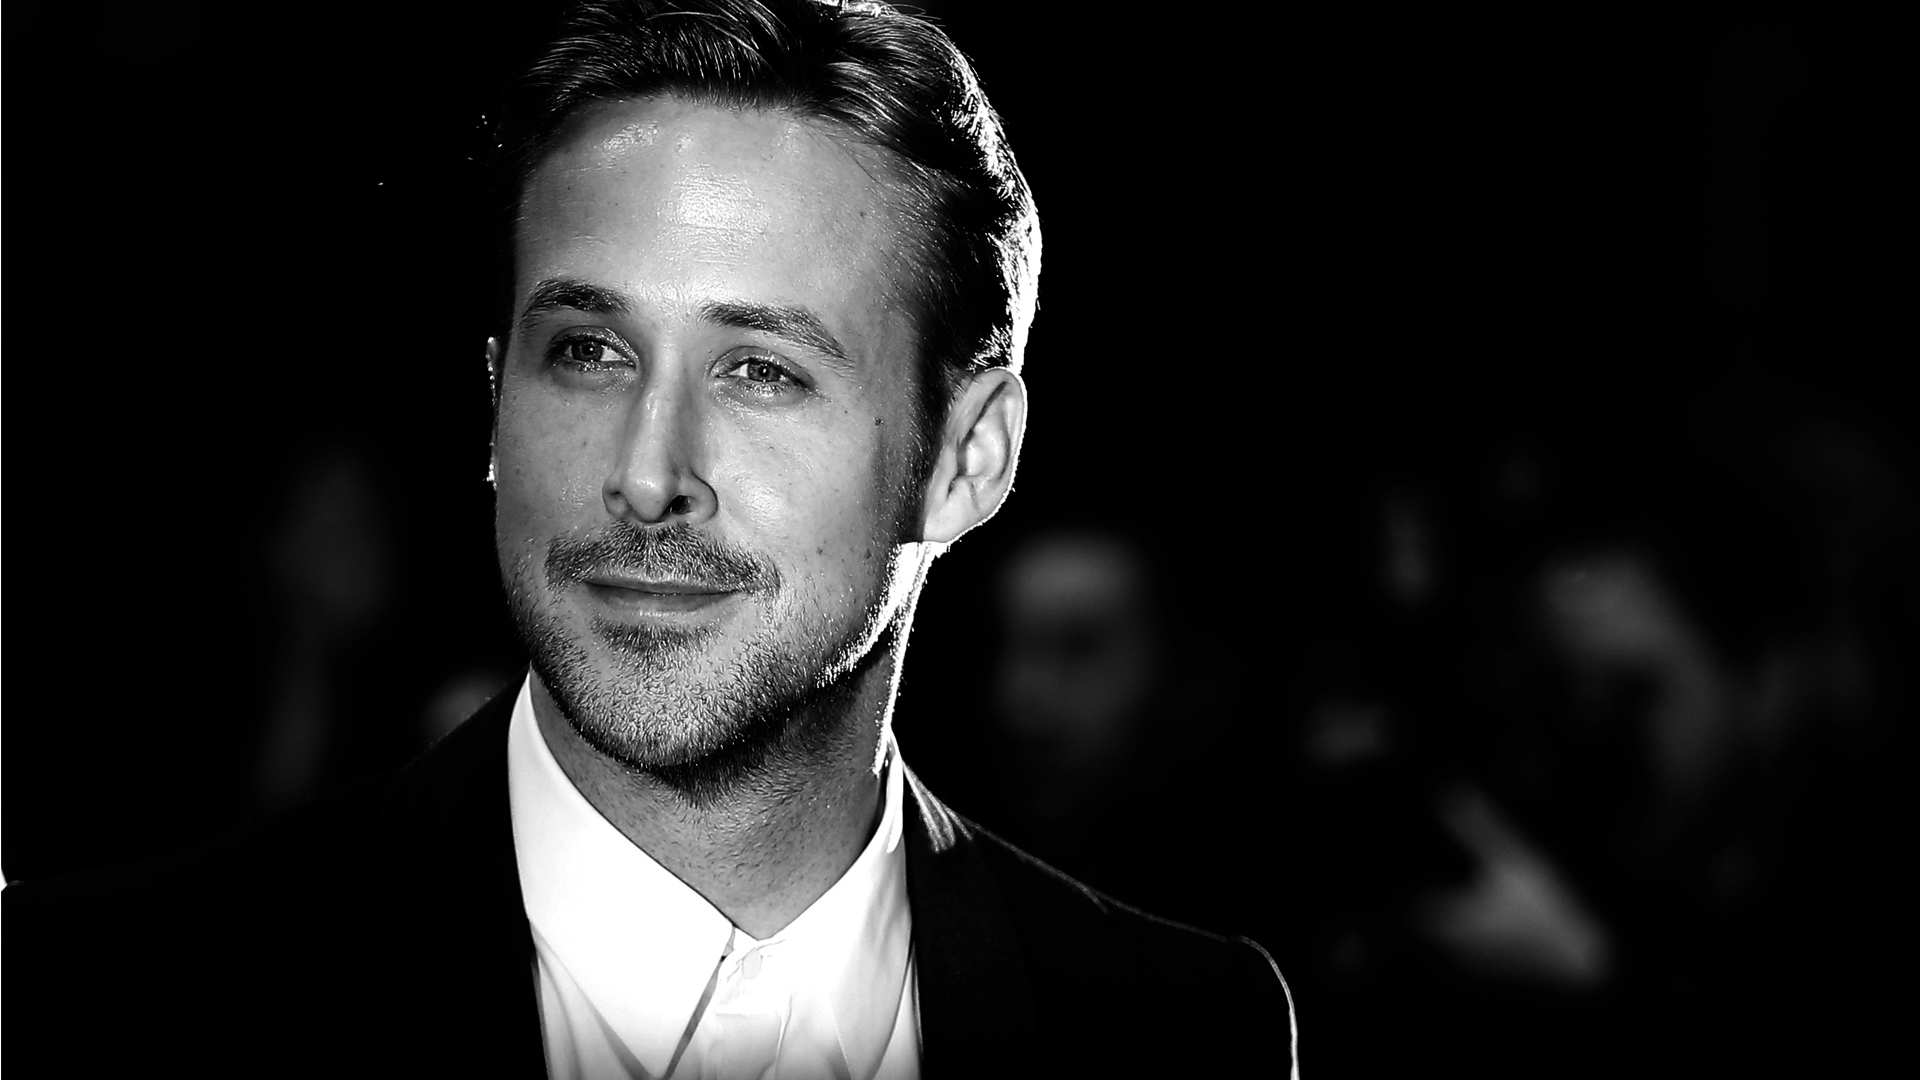 ryan gosling hd desktop background free download